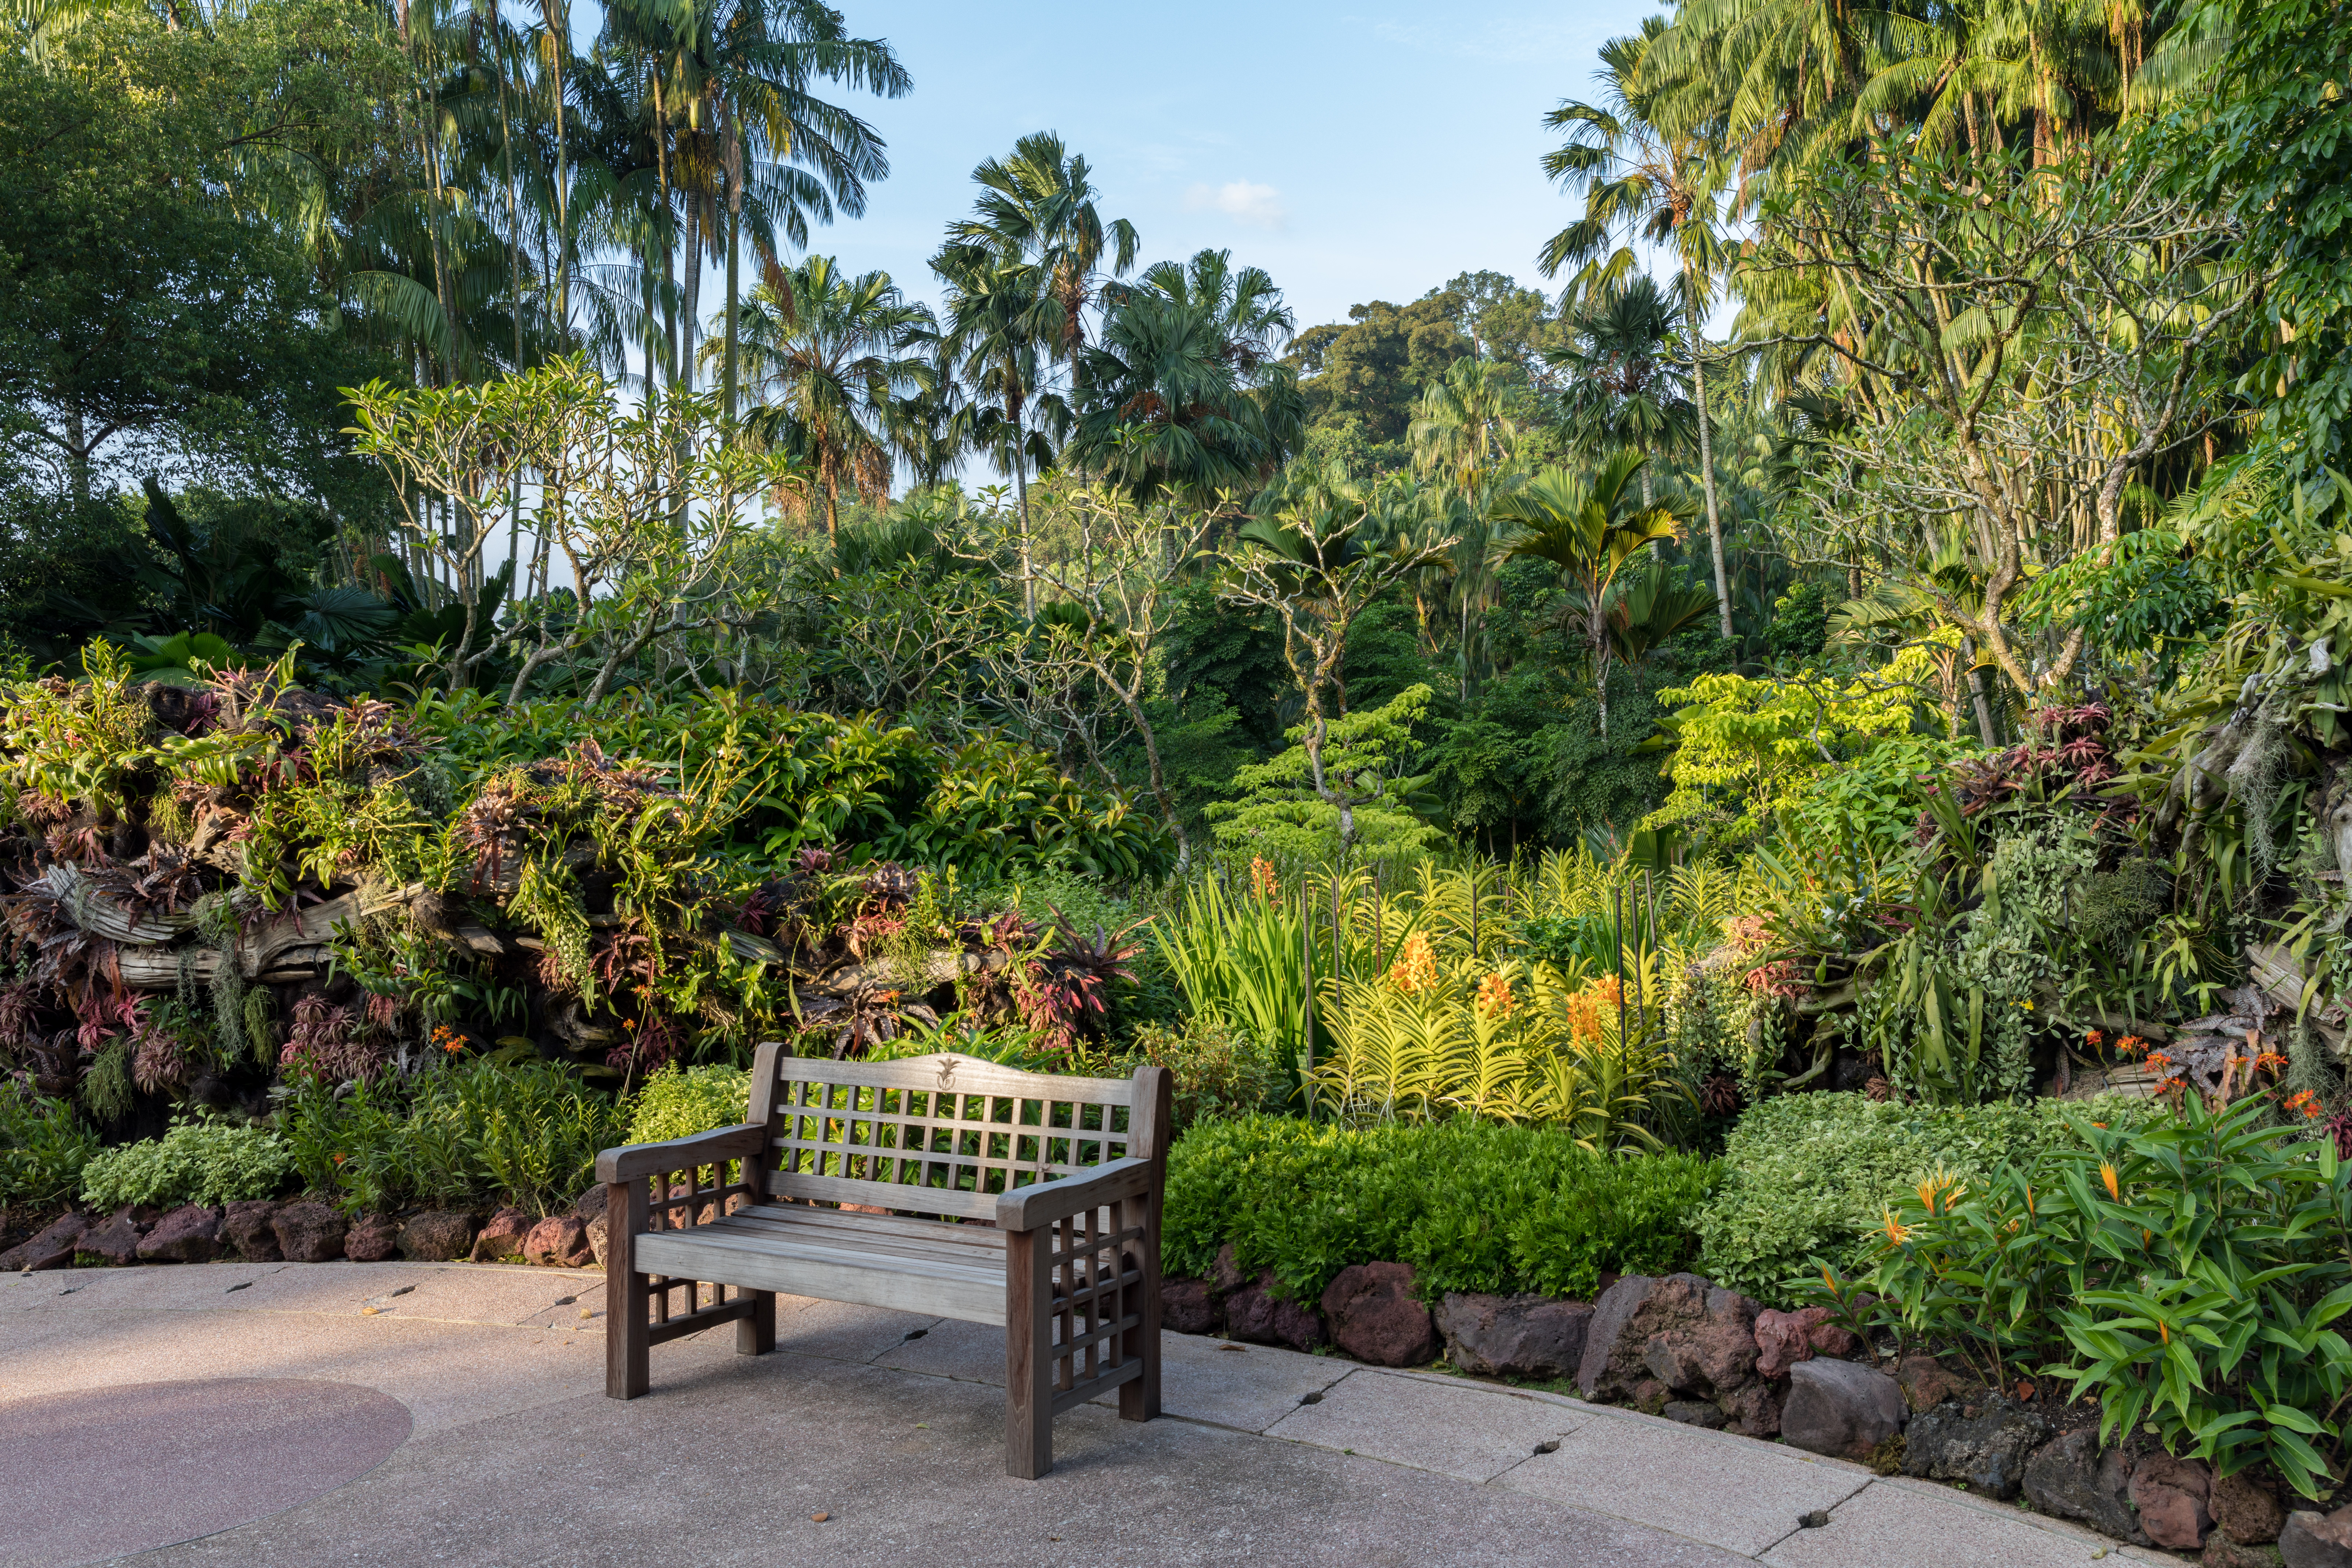 Exterieur Botanic File Outdoor Wooden Bench In Singapore Botanic Gardens At Golden